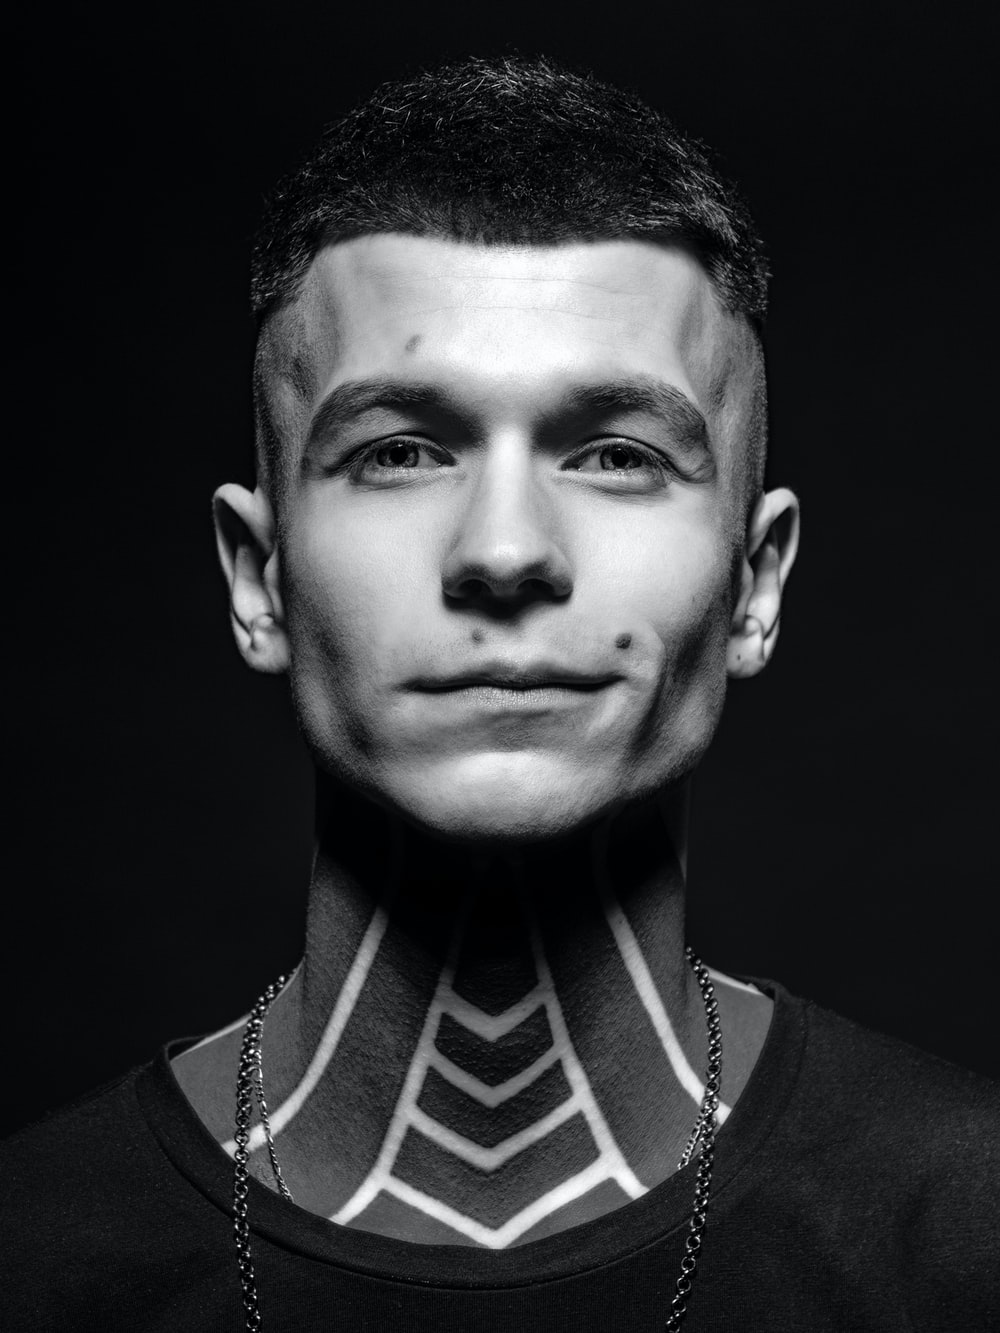 portrait photography of man with neck tattoos